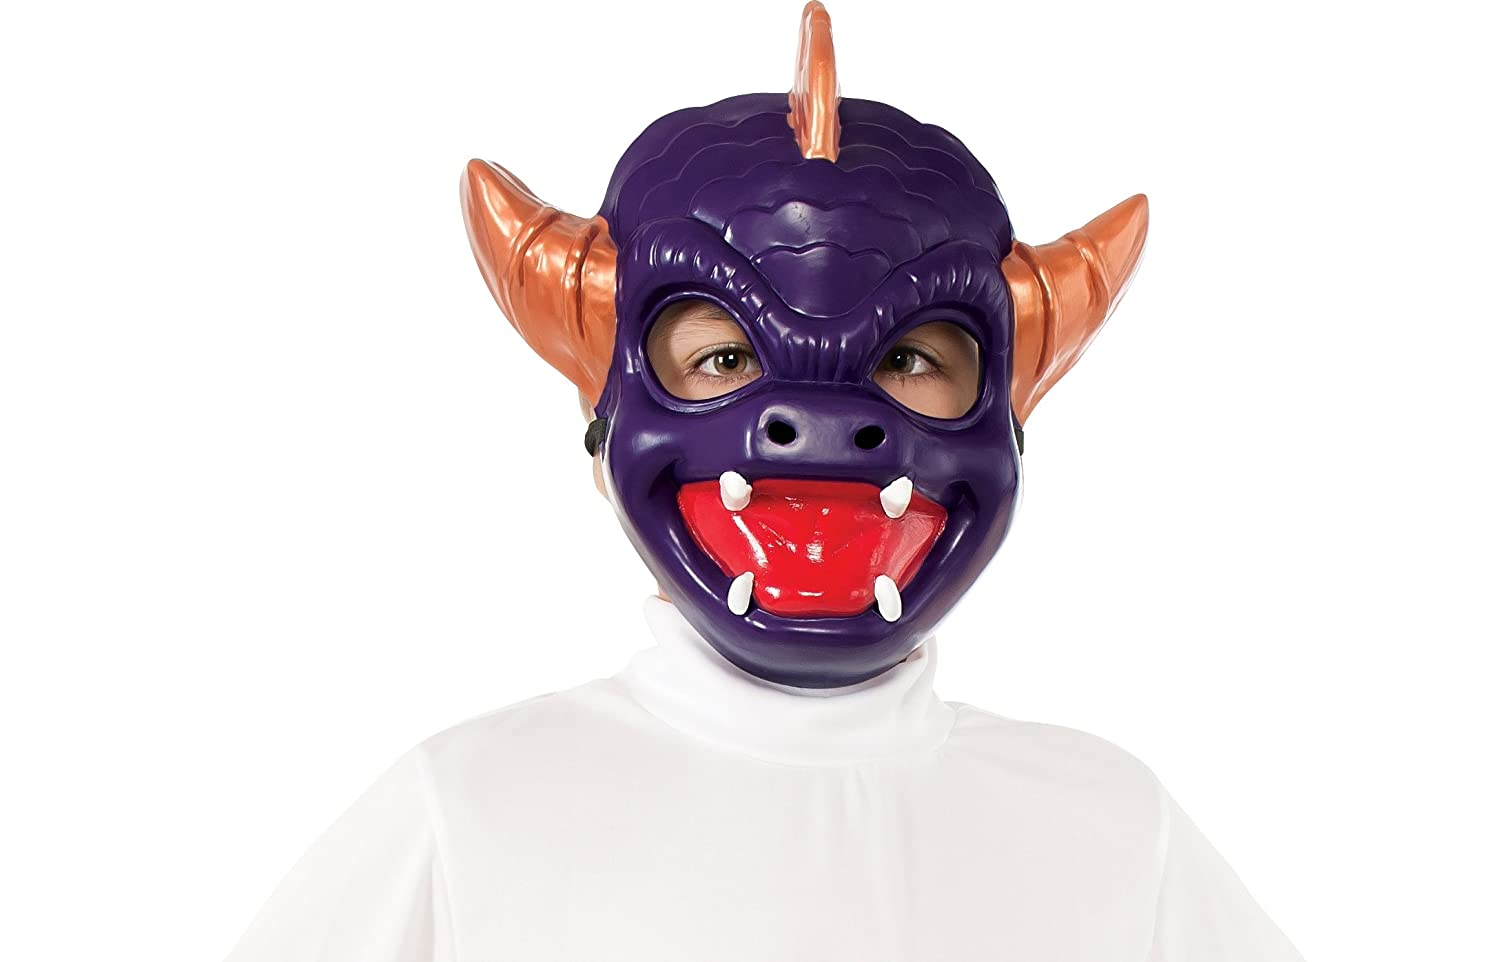 Skylanders Giants Spyro Mask Rubie's Rubies - Domestic 4969